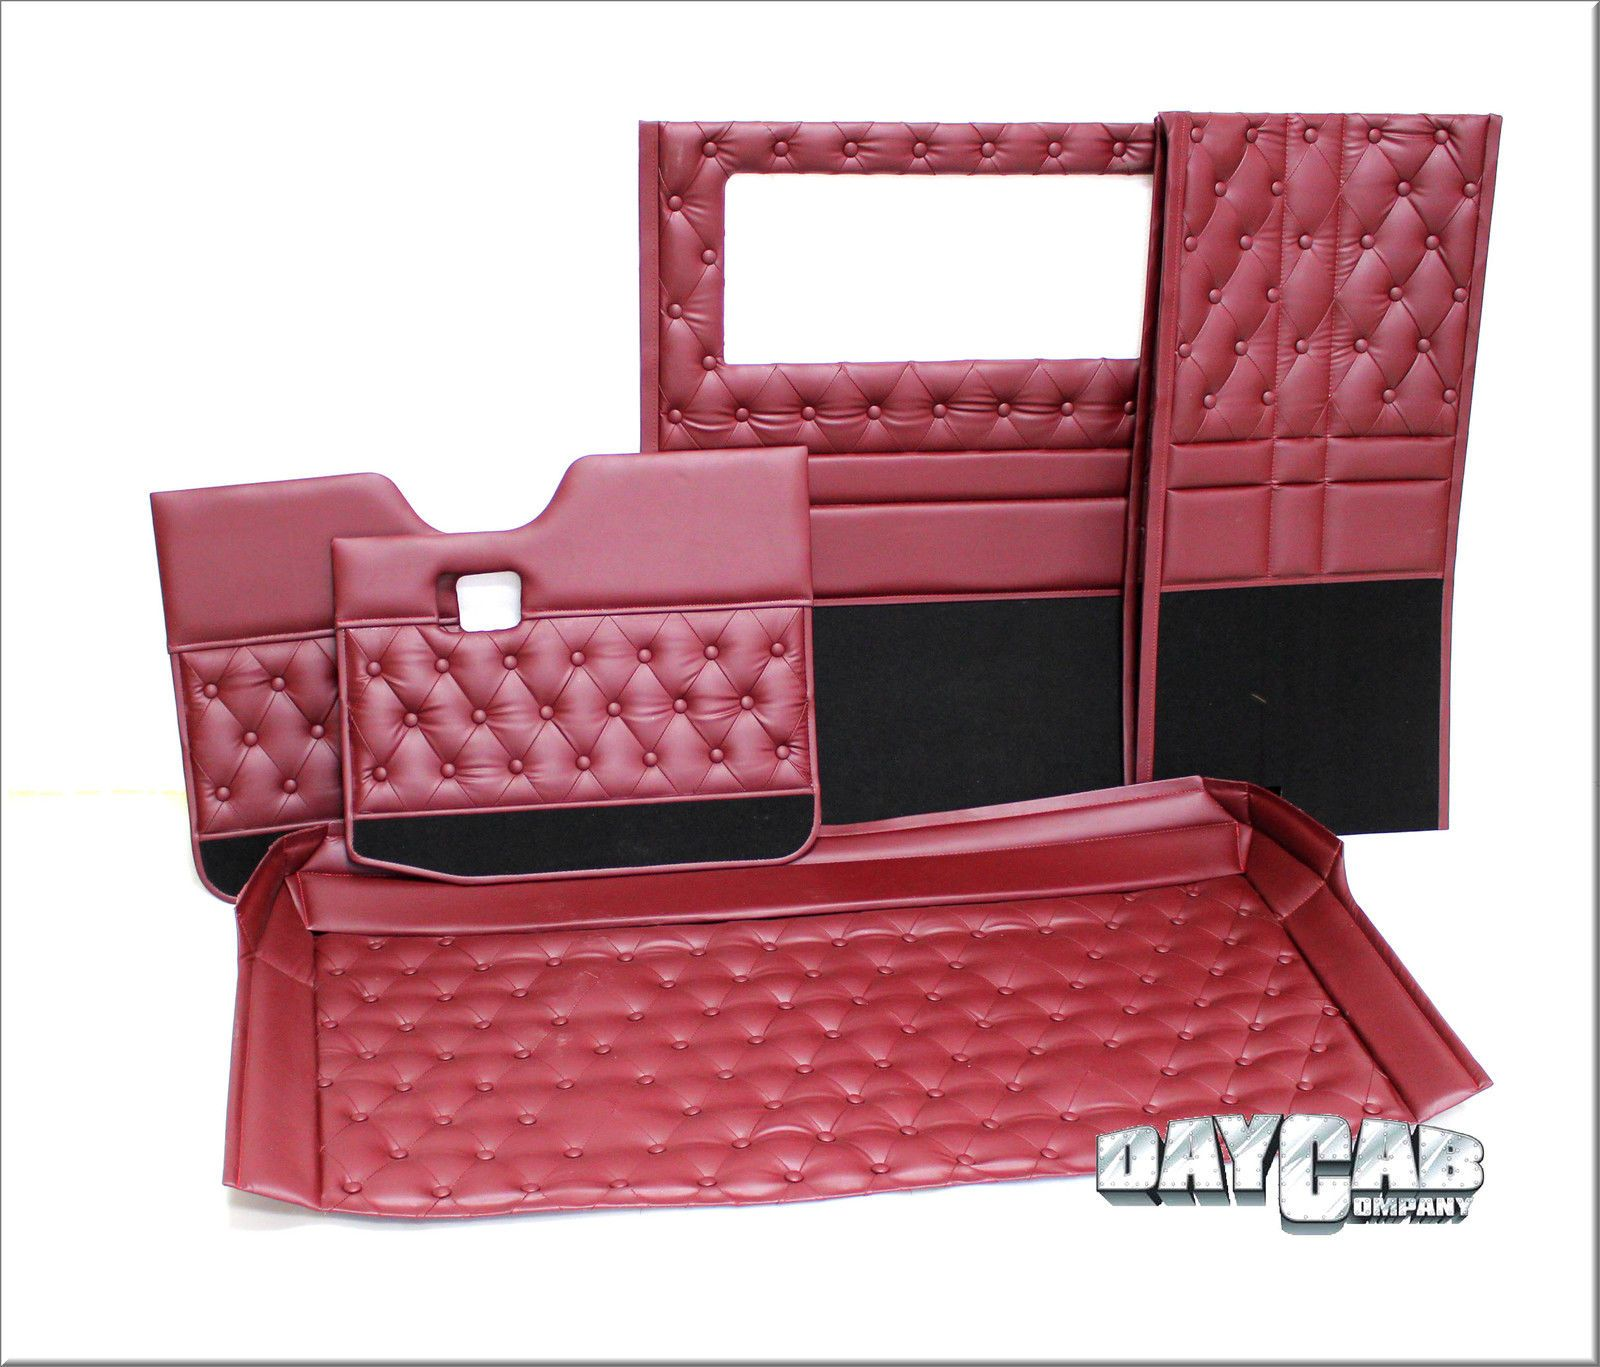 Kenworth VIT Interior / Upholstery for T800, W900, T600 #Motors